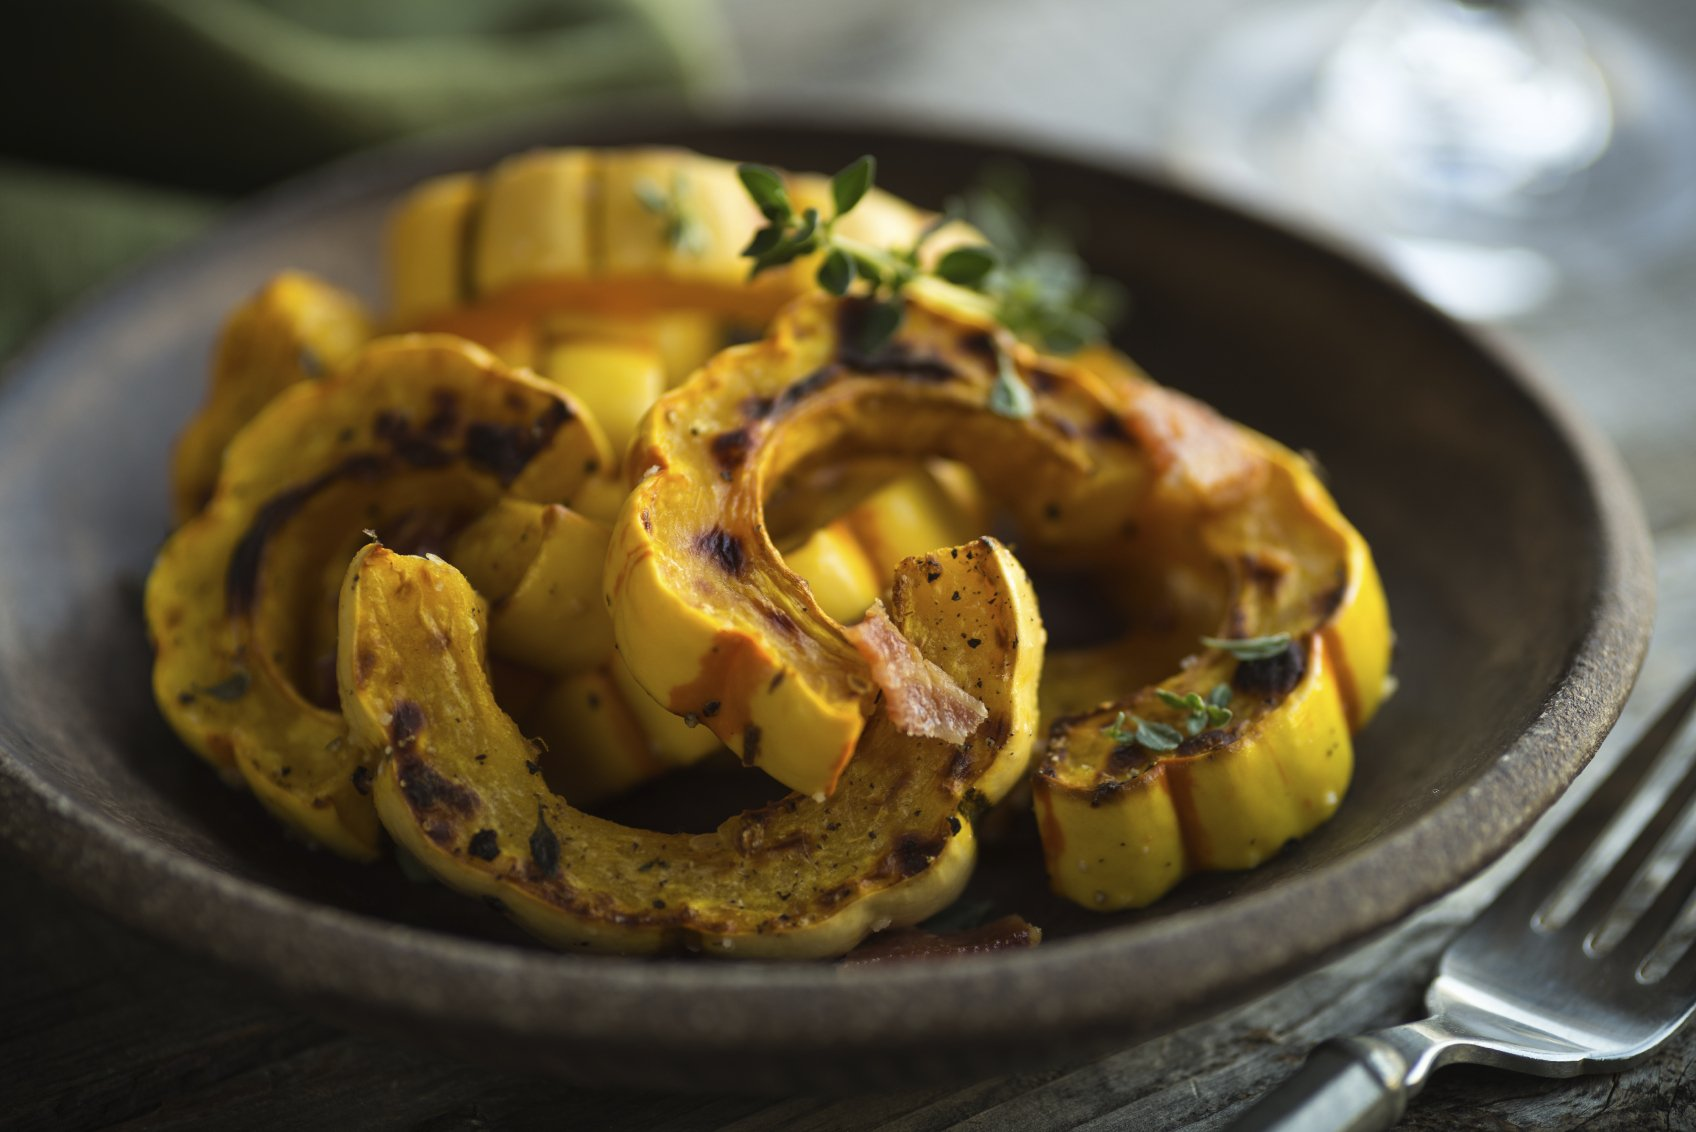 Plate with freshly roasted delicata squash and herbs